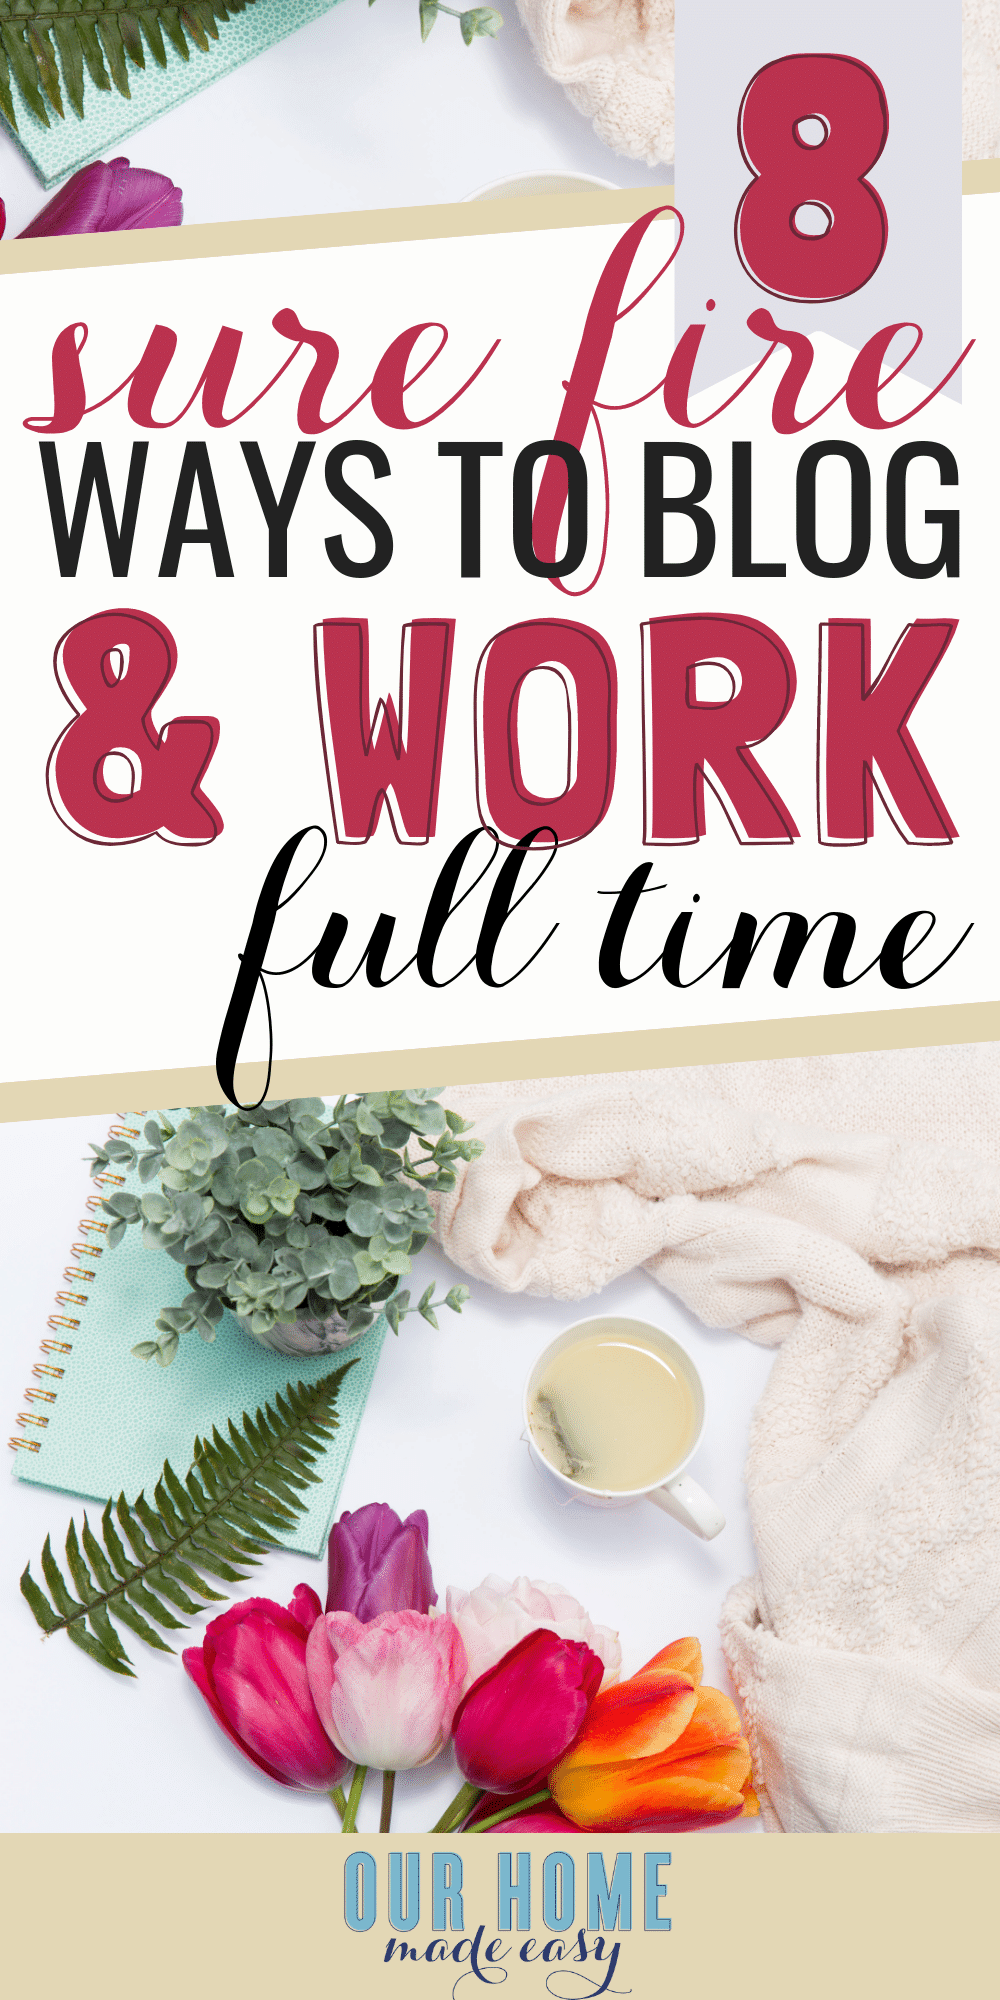 Most blogging information isn't perfect for a mom who works all day. After blogging for years & working full time, I'm sharing how to balance work and blogging! #blogger #mom #workingmom #ourhomemadeeasy